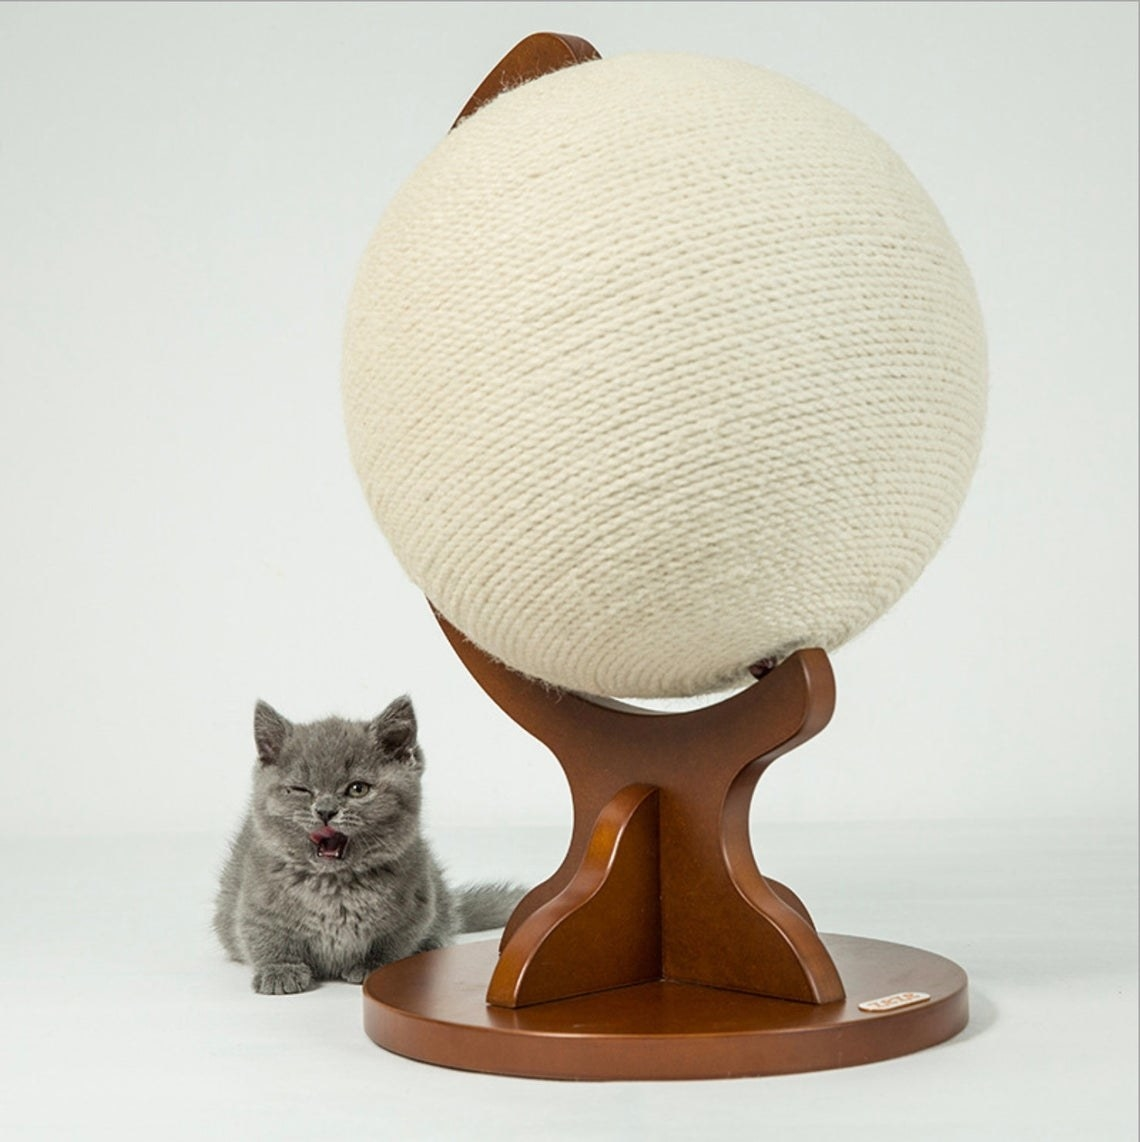 Globe shaped cat scratcher with wooden base and scratch-able orb